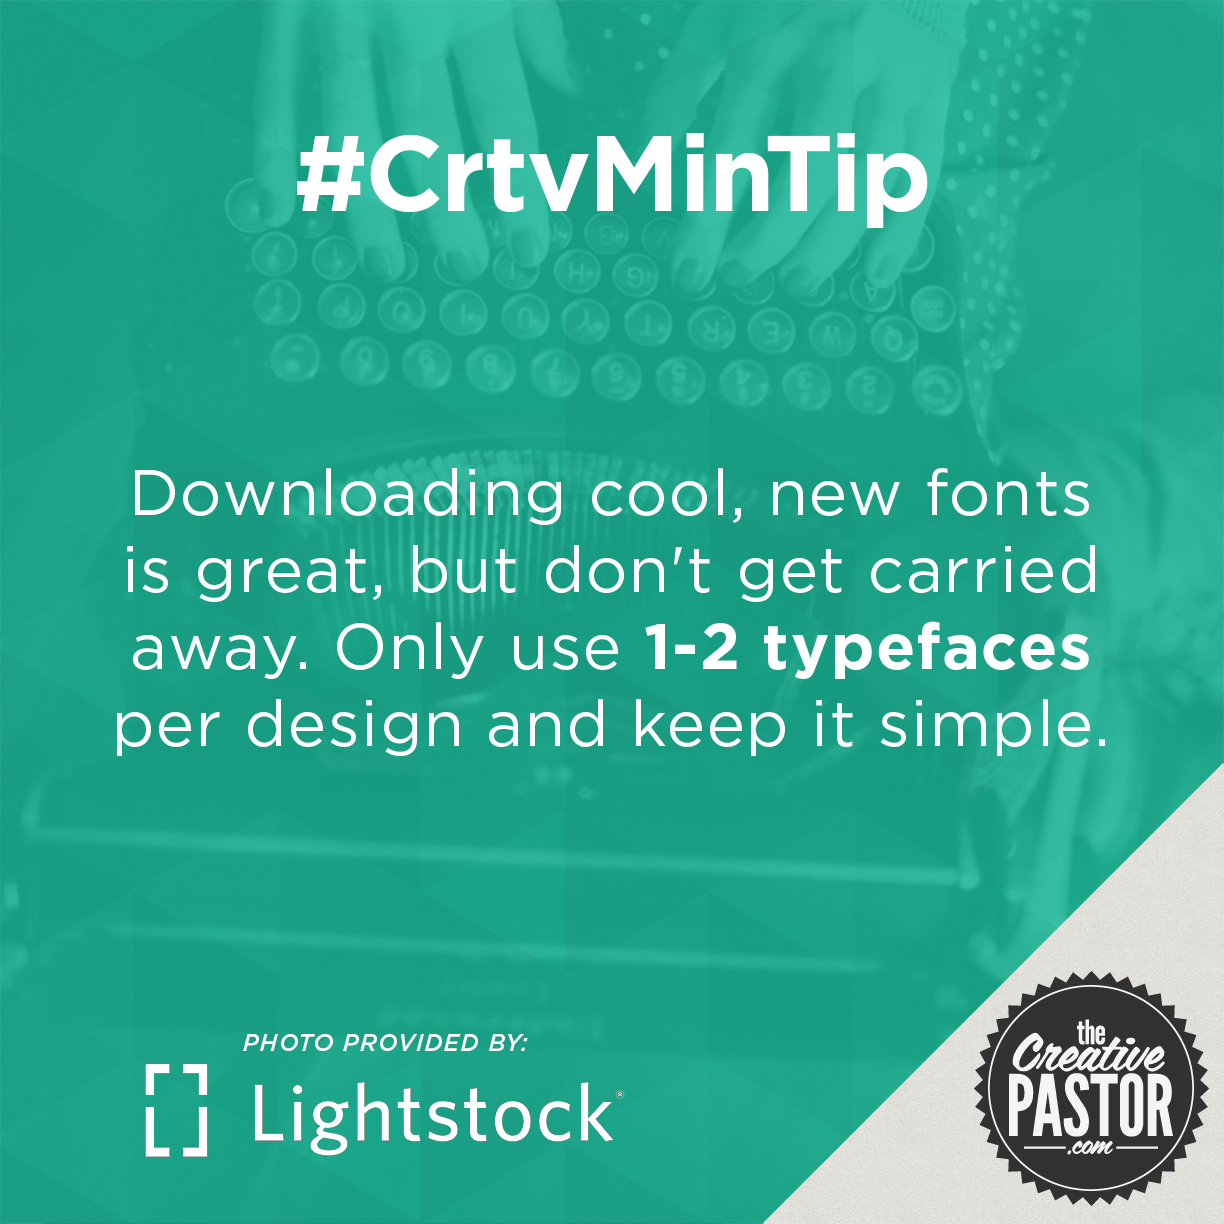 Downloading cool, new fonts is great, but don't get carried away. Only use 1-2 typefaces per design and keep it simple.